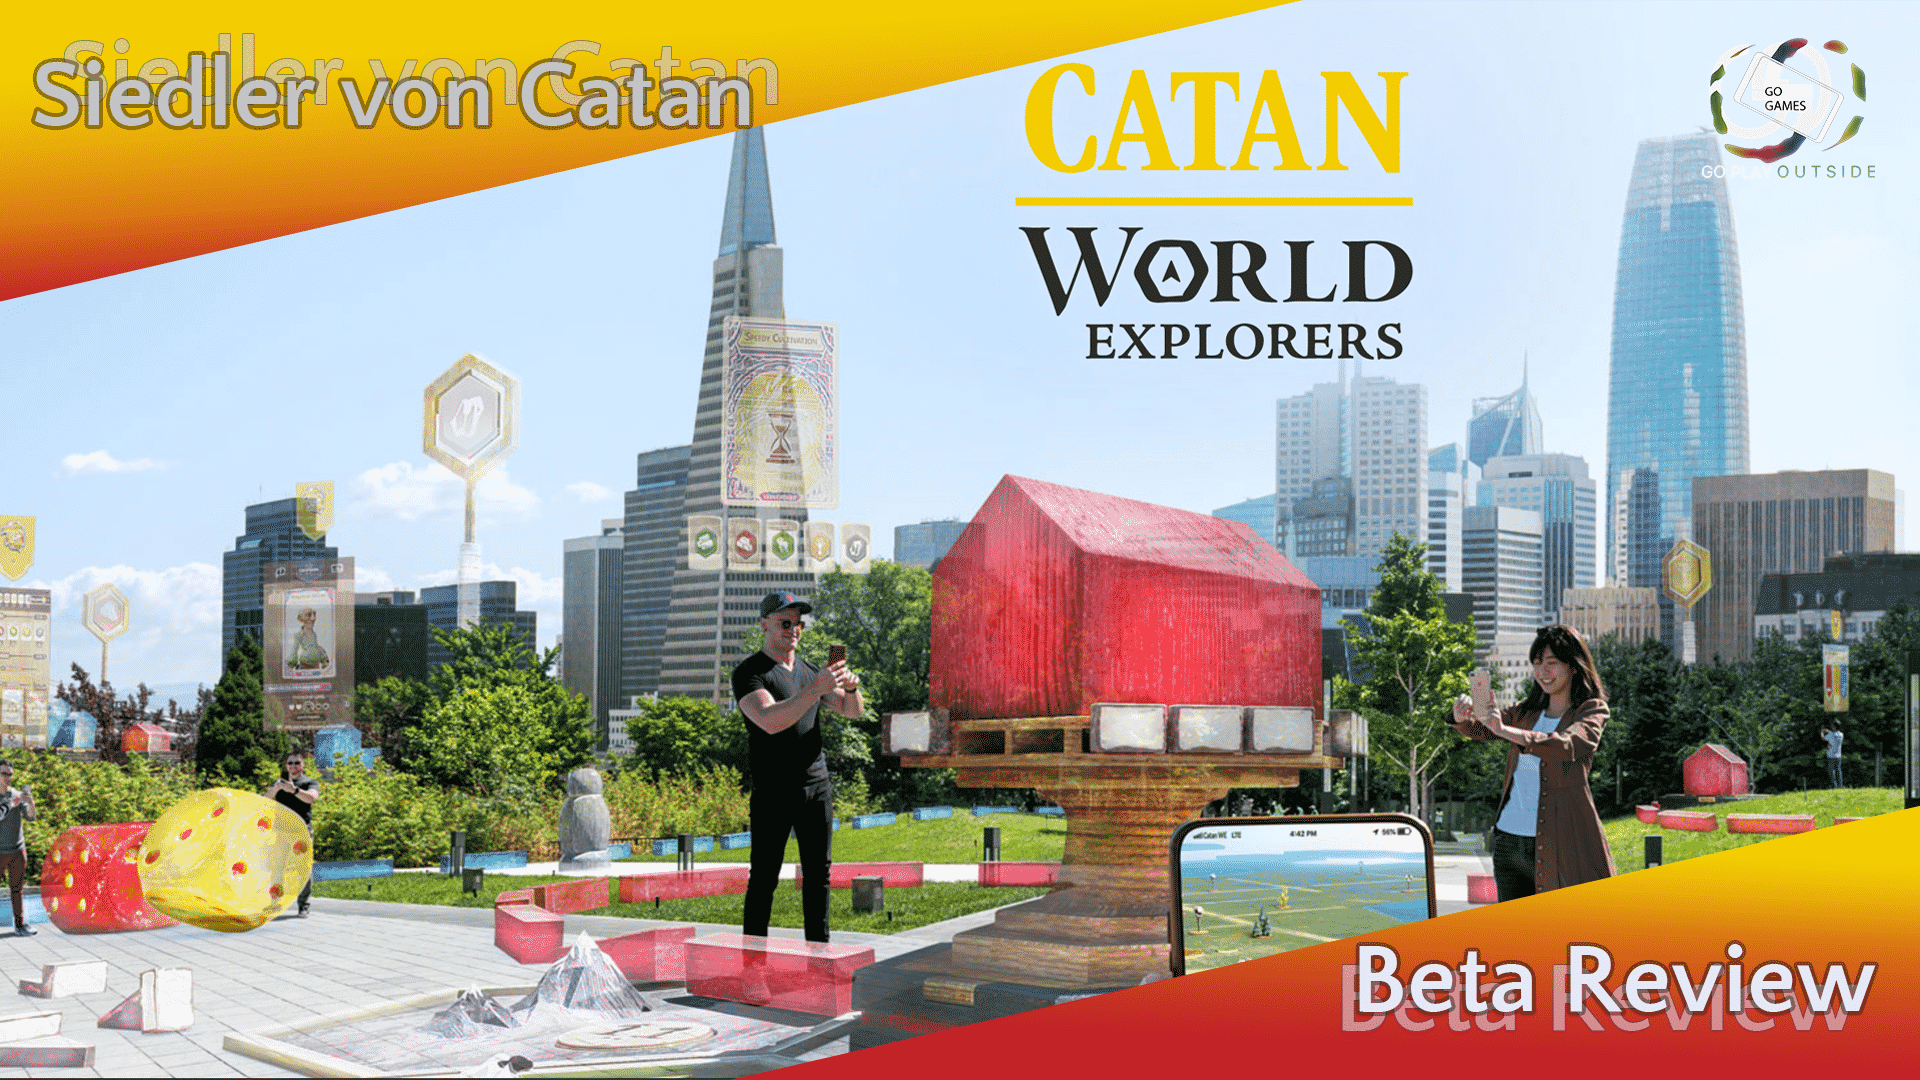 Siedler von Catan Beta Review